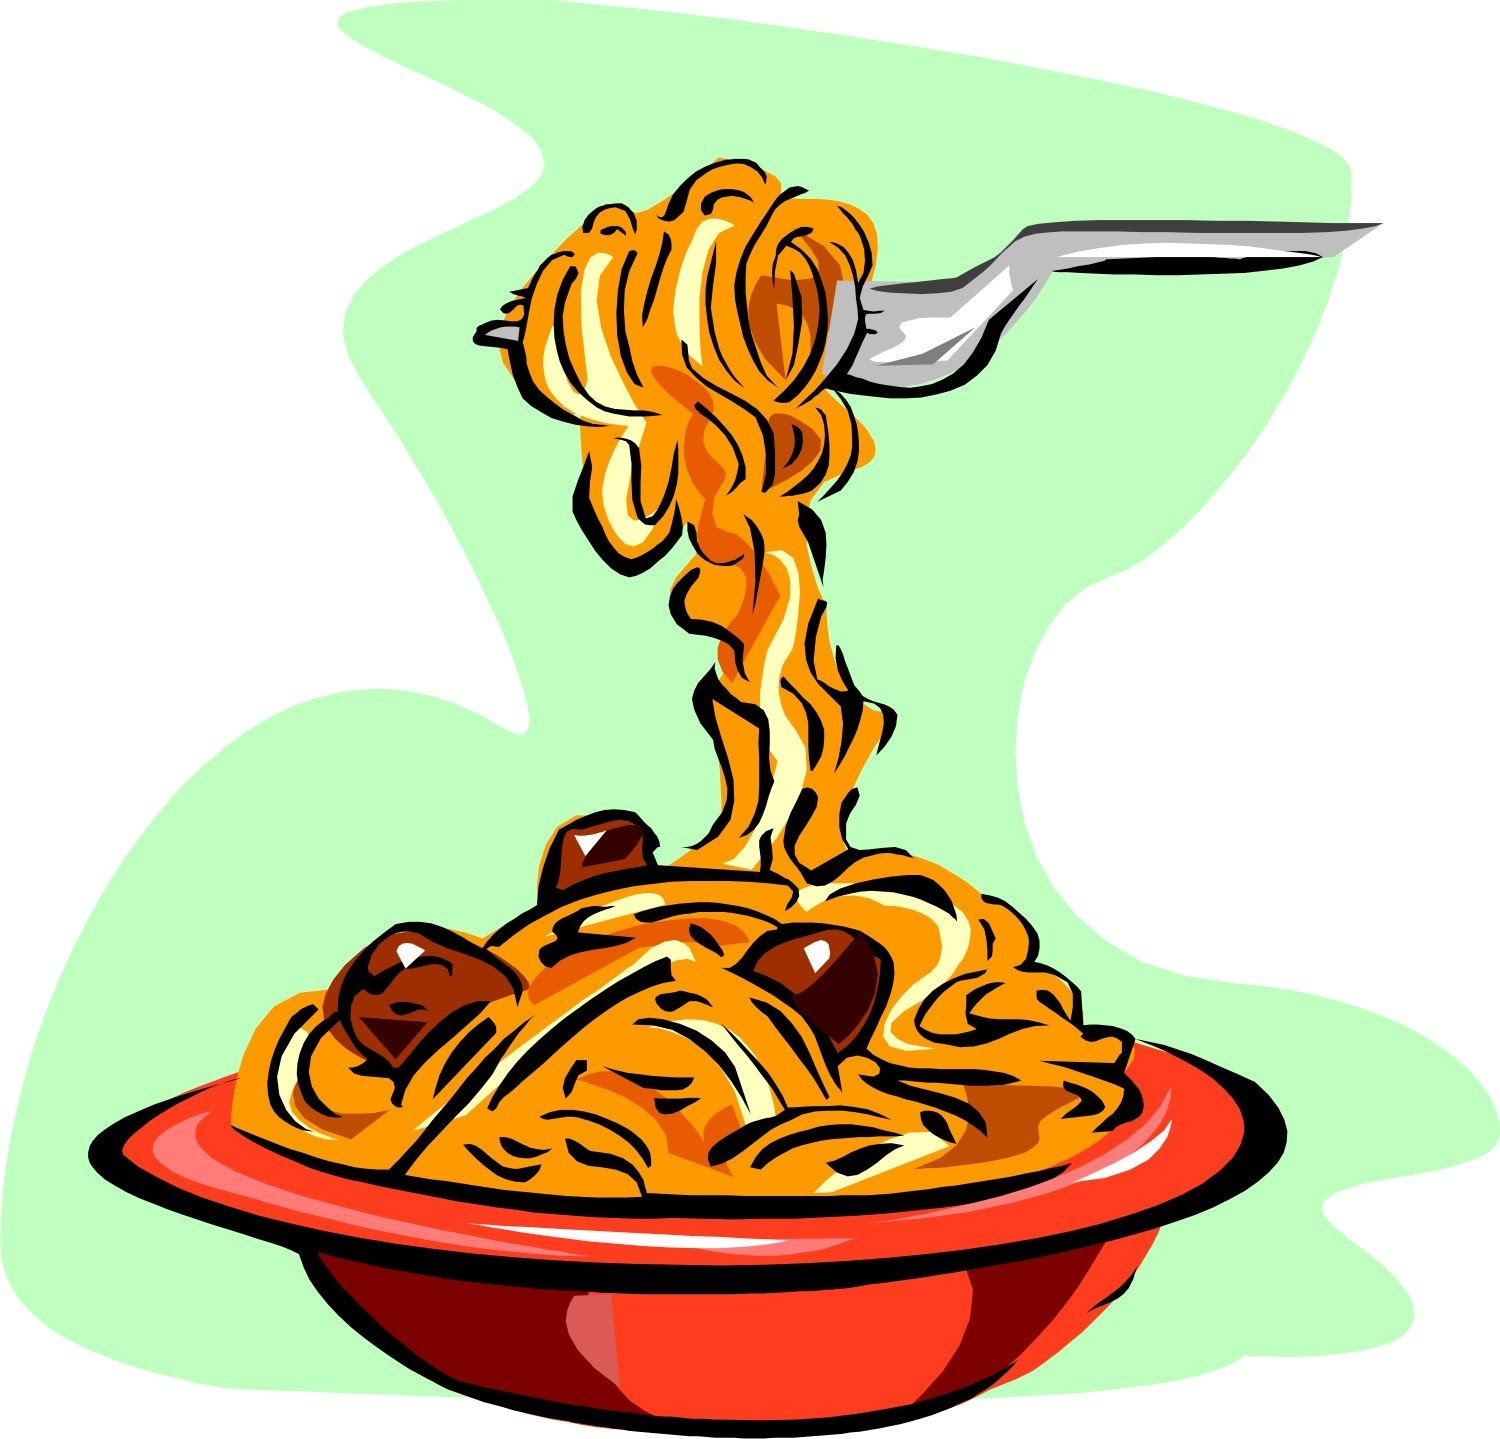 1500x1439 Spaghetti Pasta Clipart The Cliparts Databases